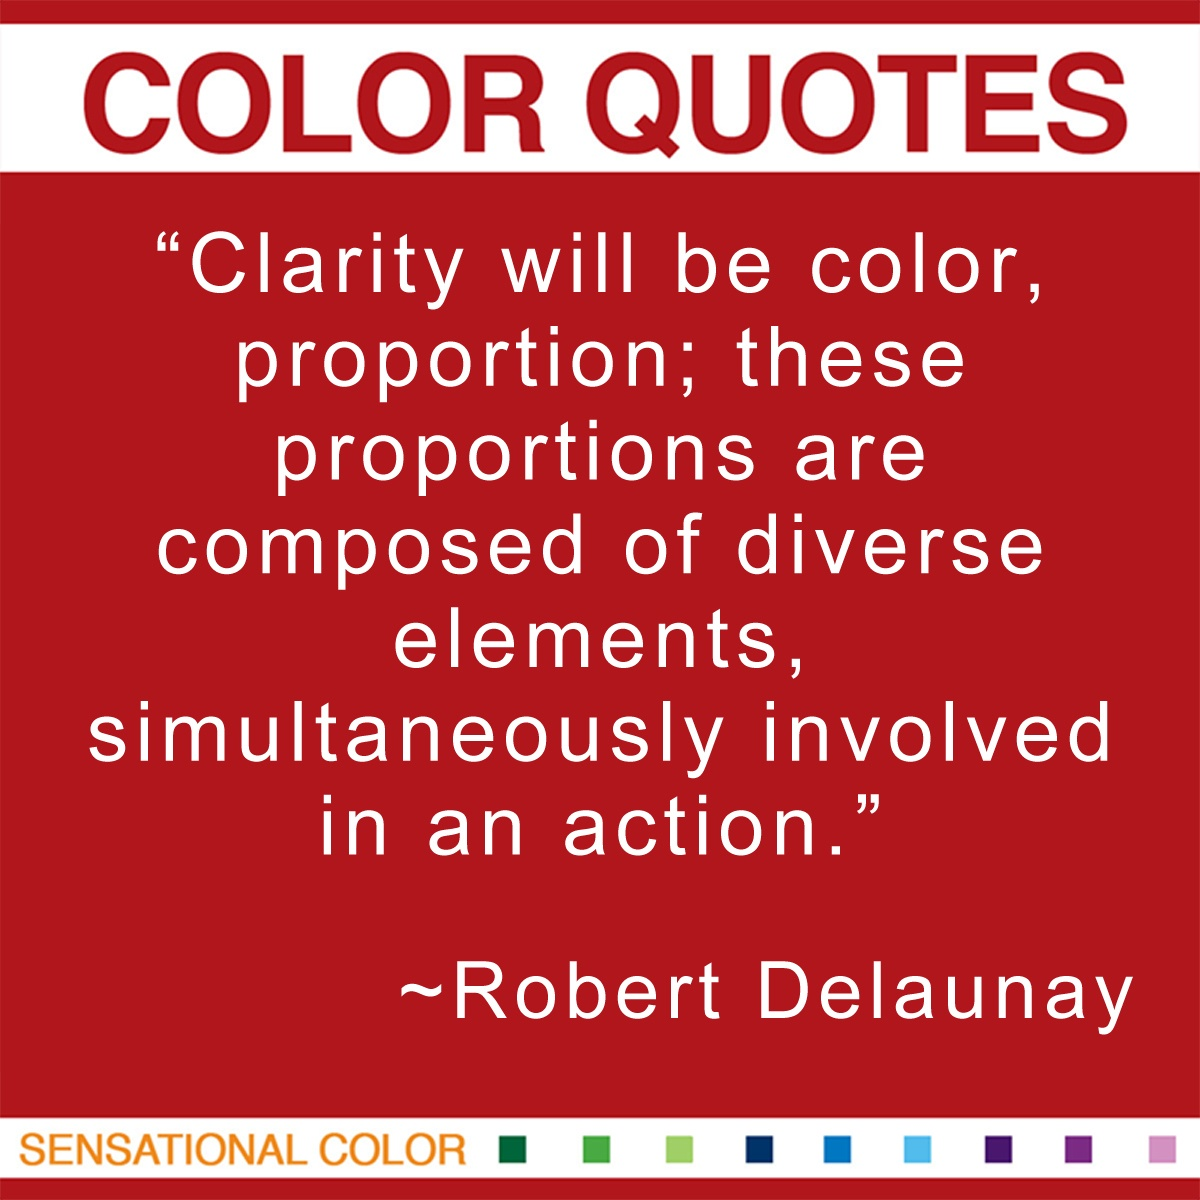 """Clarity will be color, proportion; these proportions are composed of diverse elements, simultaneously involved in an action."" - Robert Delaunay"